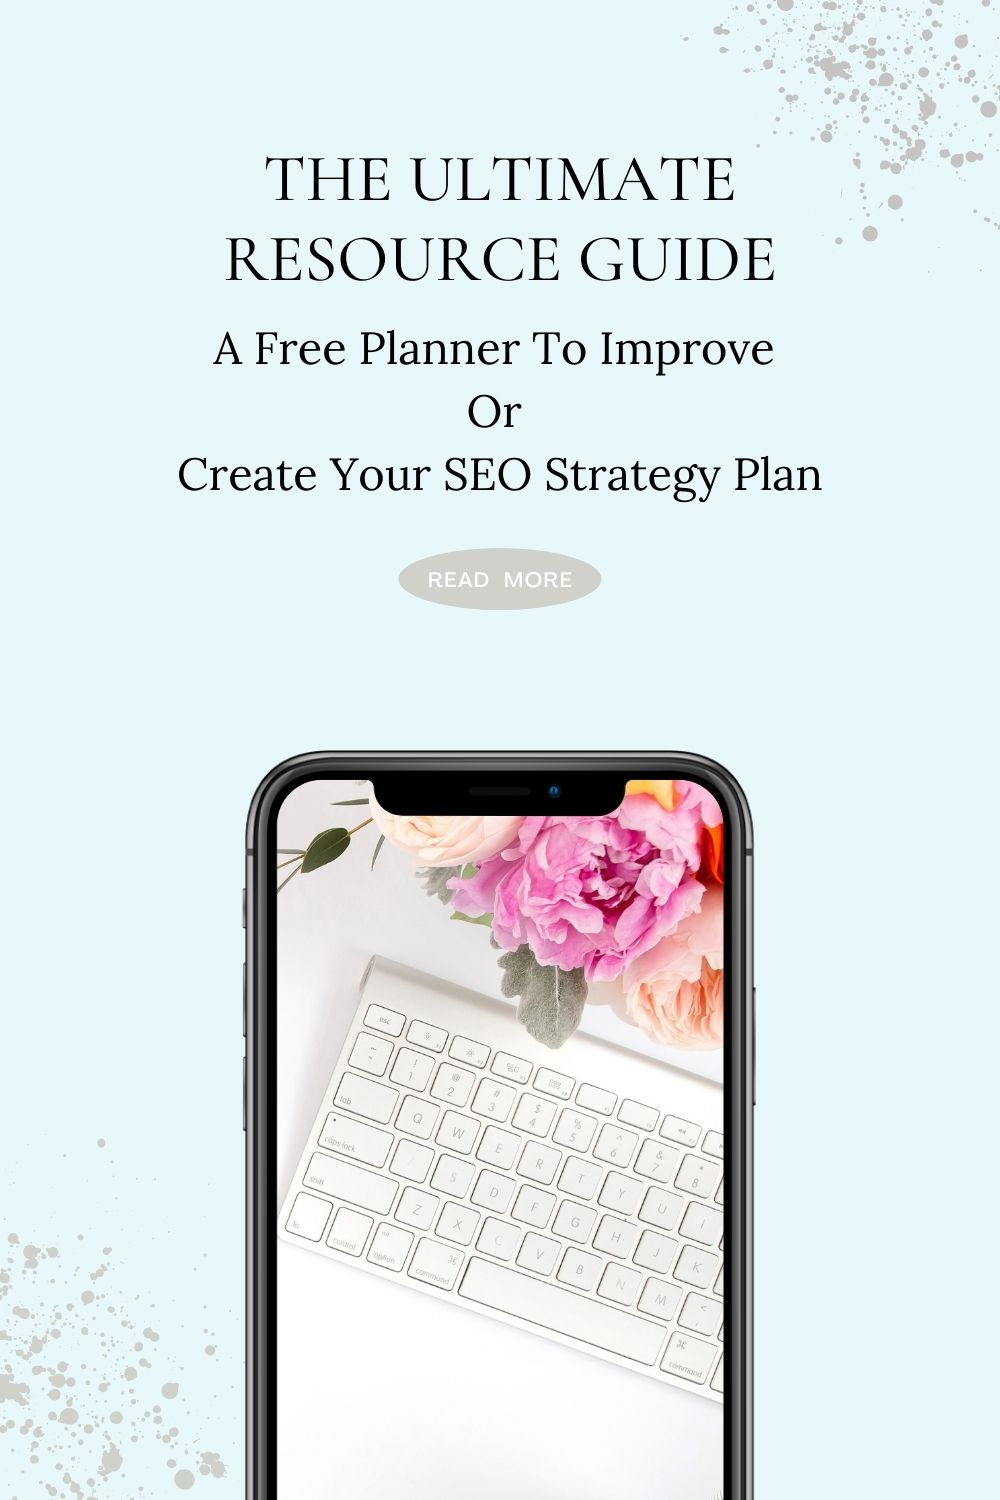 cellphone mockup with flowers and keyboard